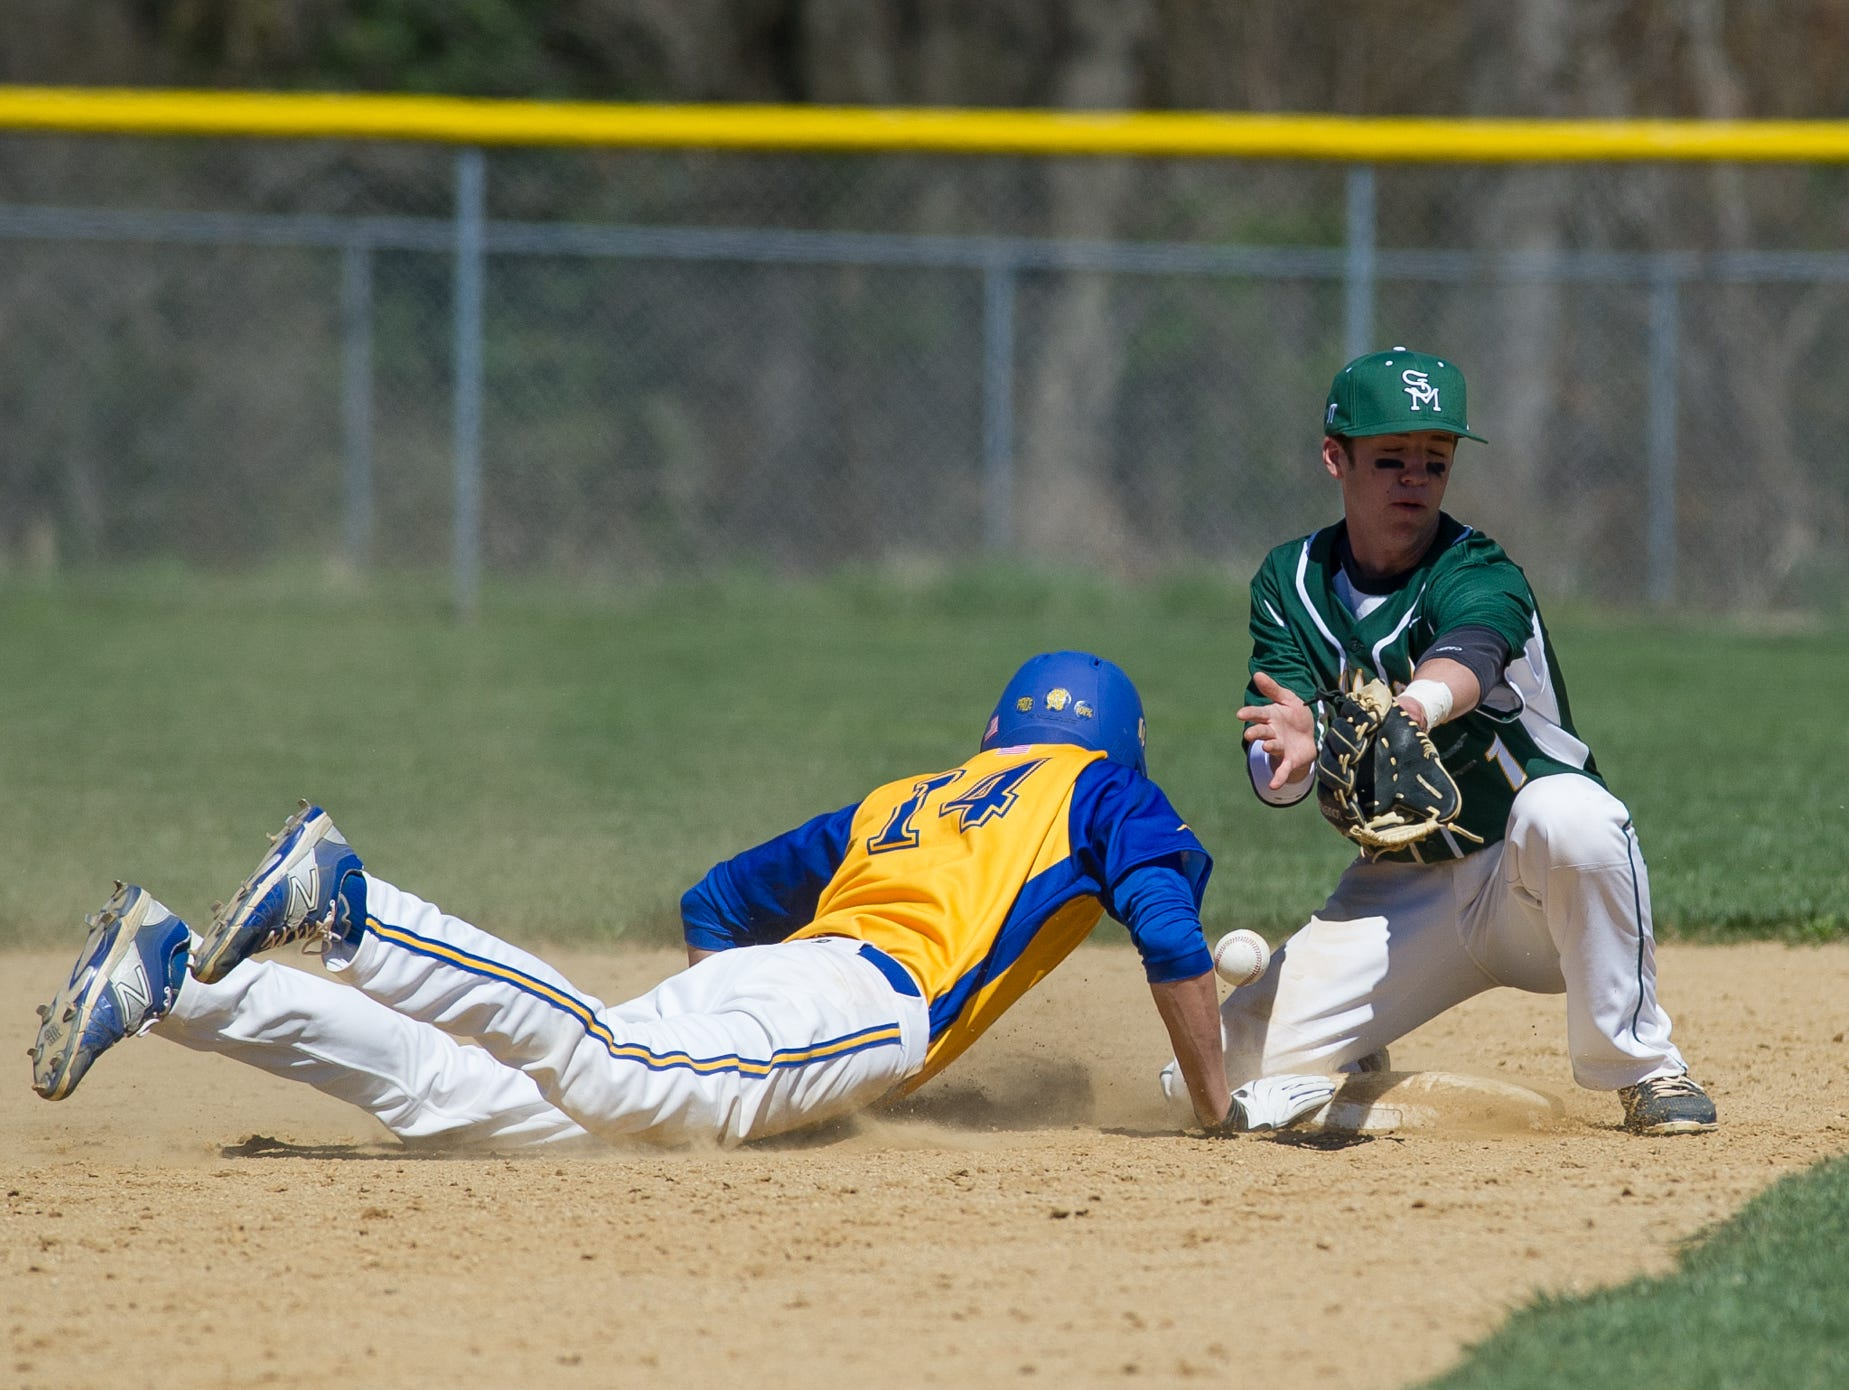 Caesar Rodney's Thomas Pomatto (14) is hit by the ball at second base as St. Mark's John Panico (12) tries to catch the ball.